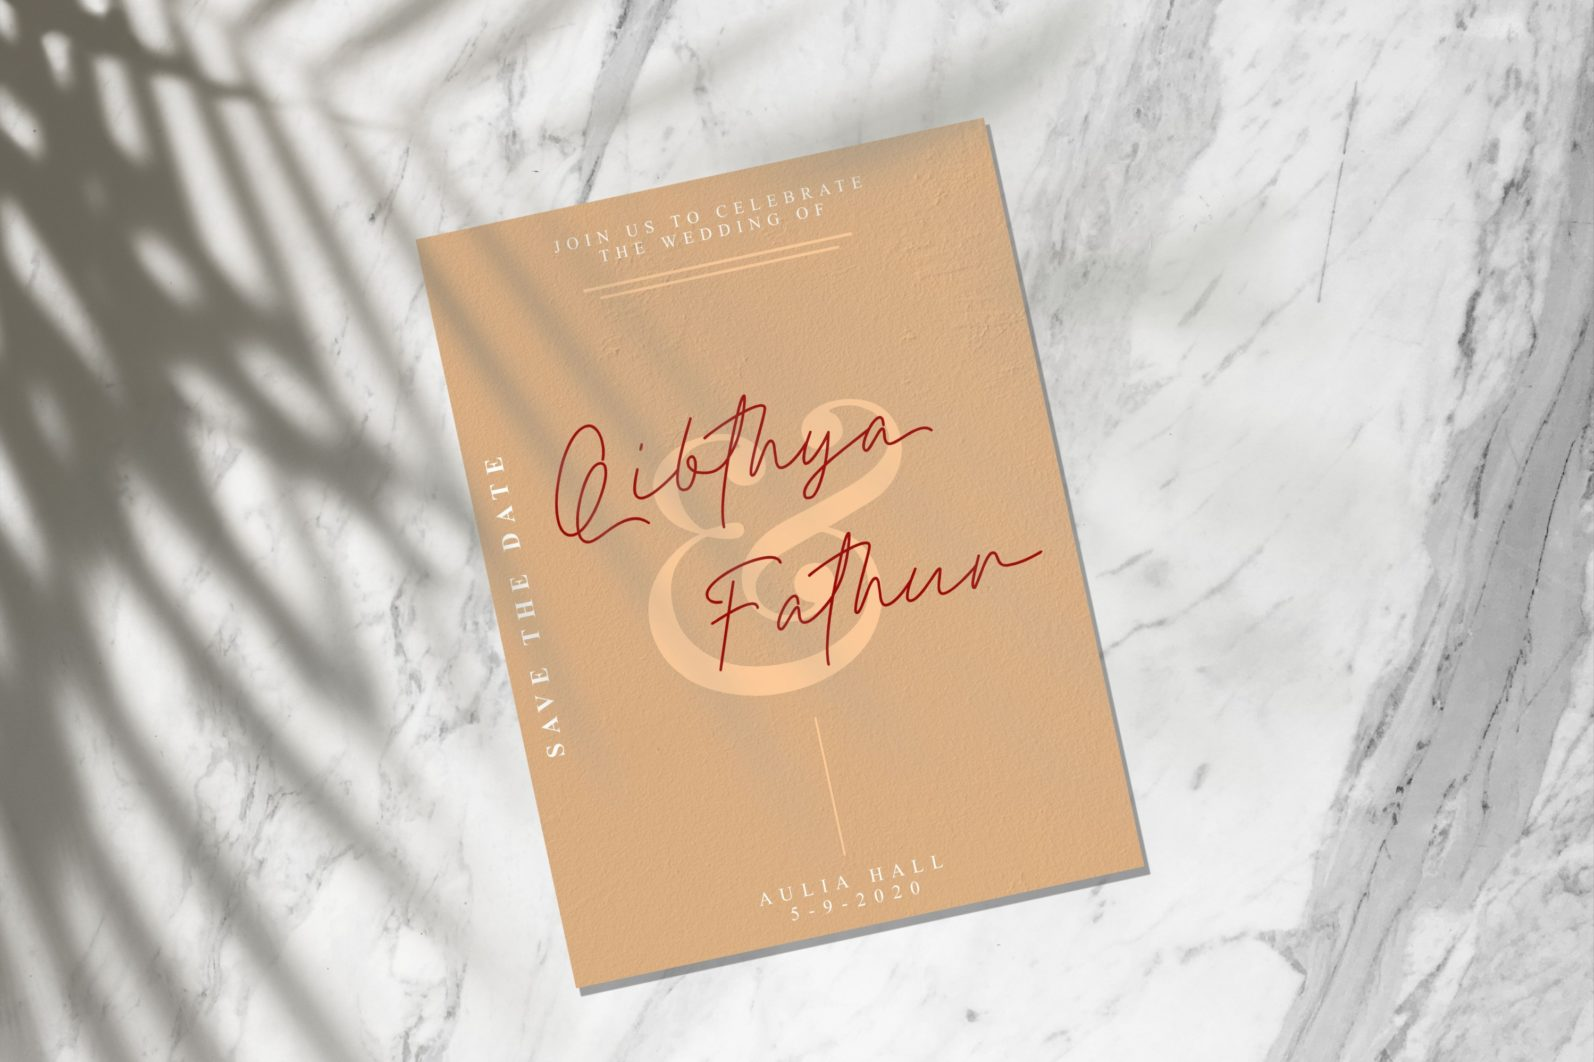 Clathyn Keith Signature - FormatFactory9 -